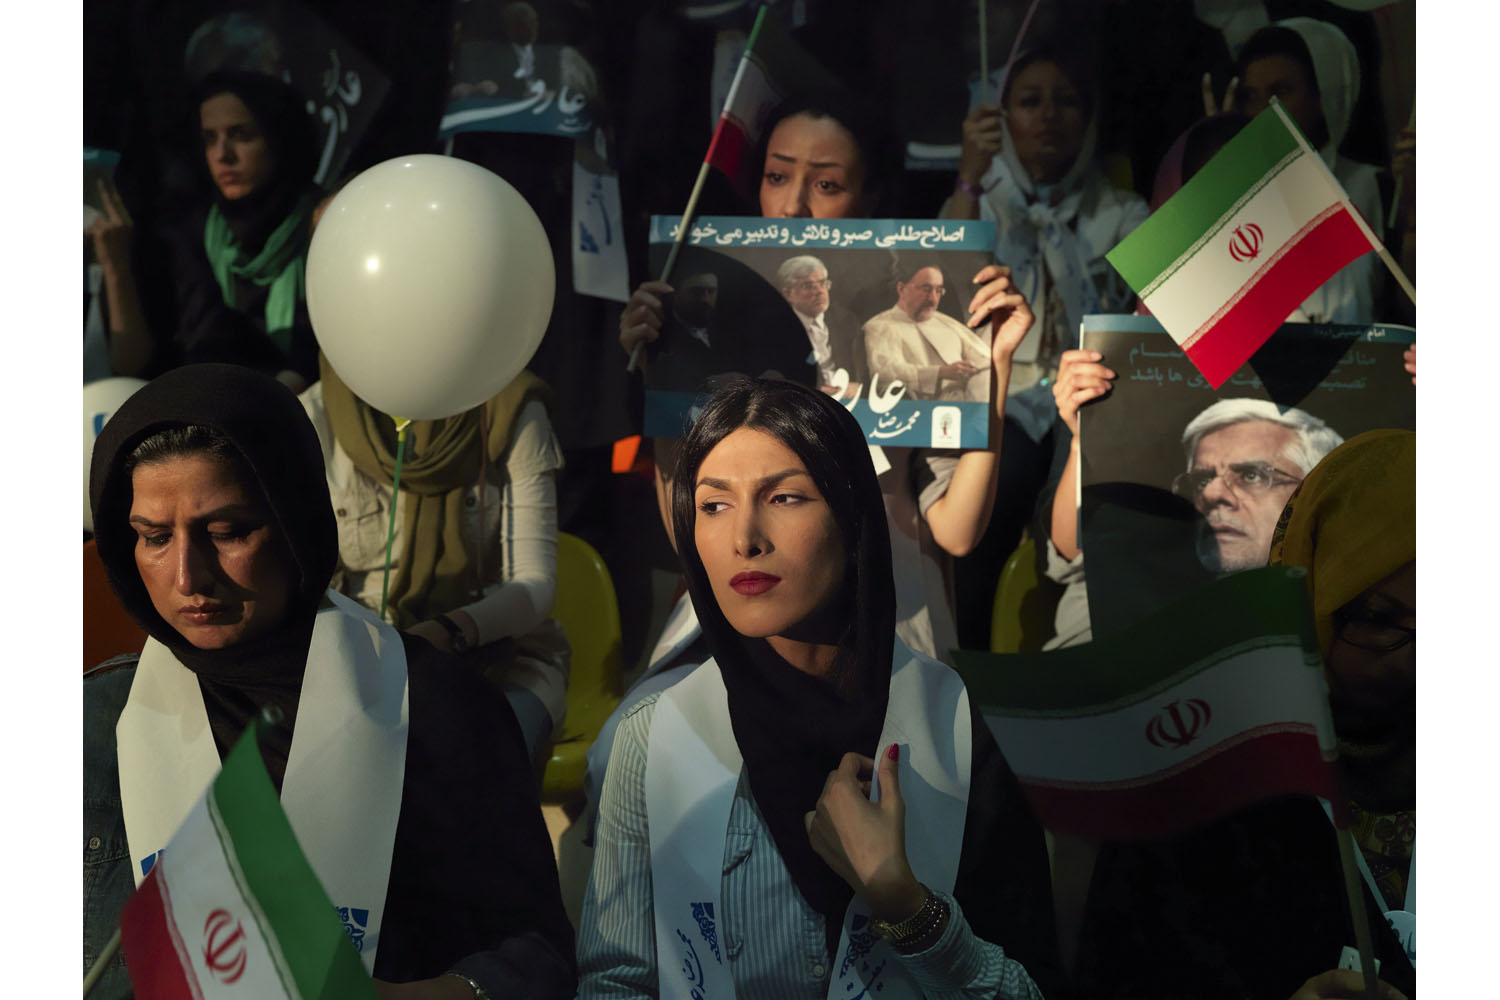 Yasaman Karimi, 23, at a rally in Tehran for Mohammed Reza Aref.